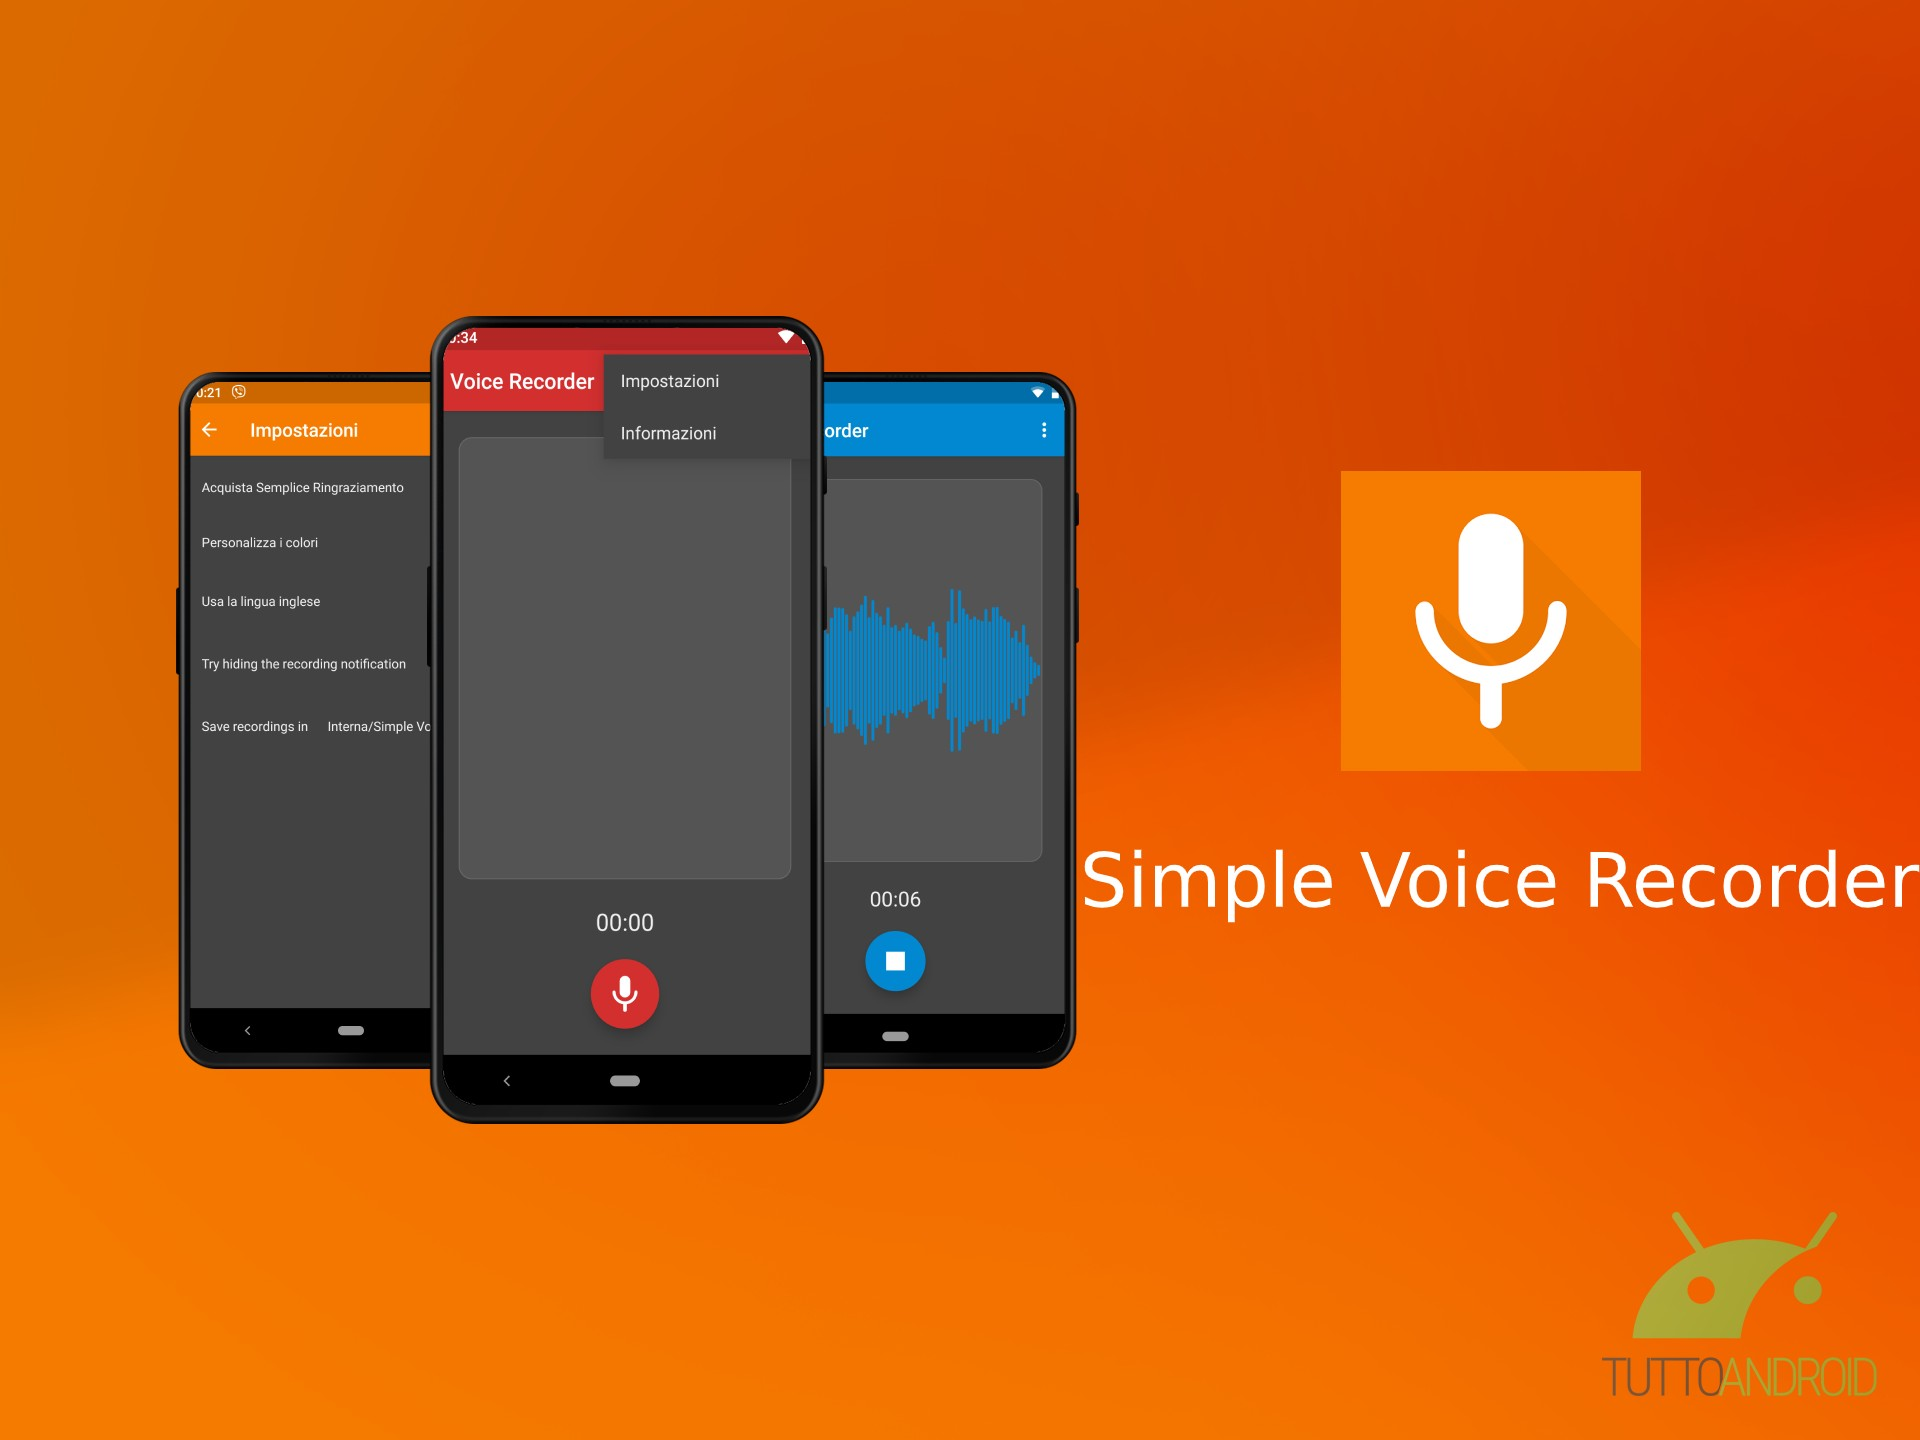 Simple Voice Recorder è un registratore vocale utile e senza